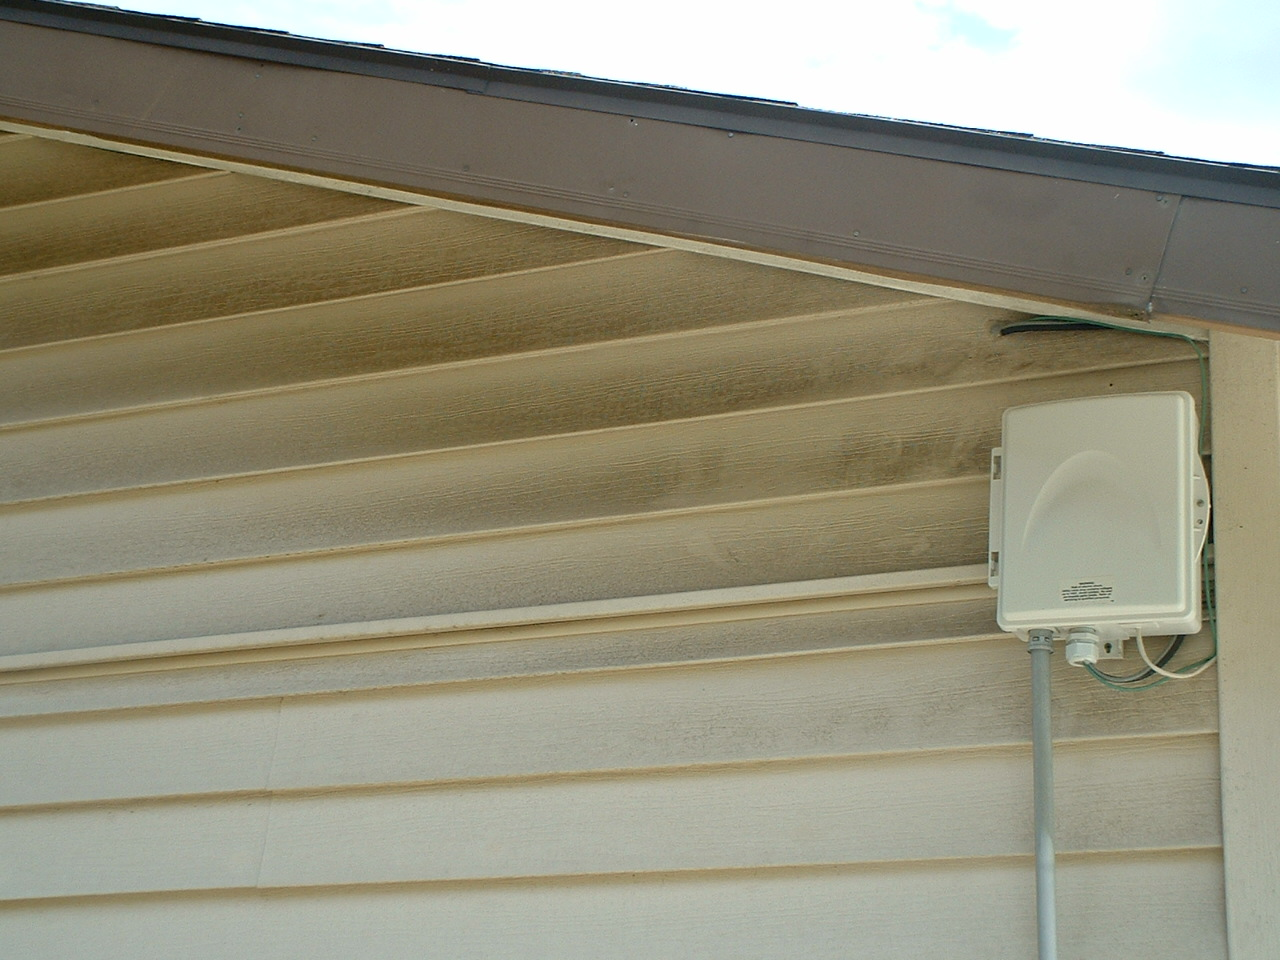 Siding washing cleaning services in portland vinyl for Types of house siding materials